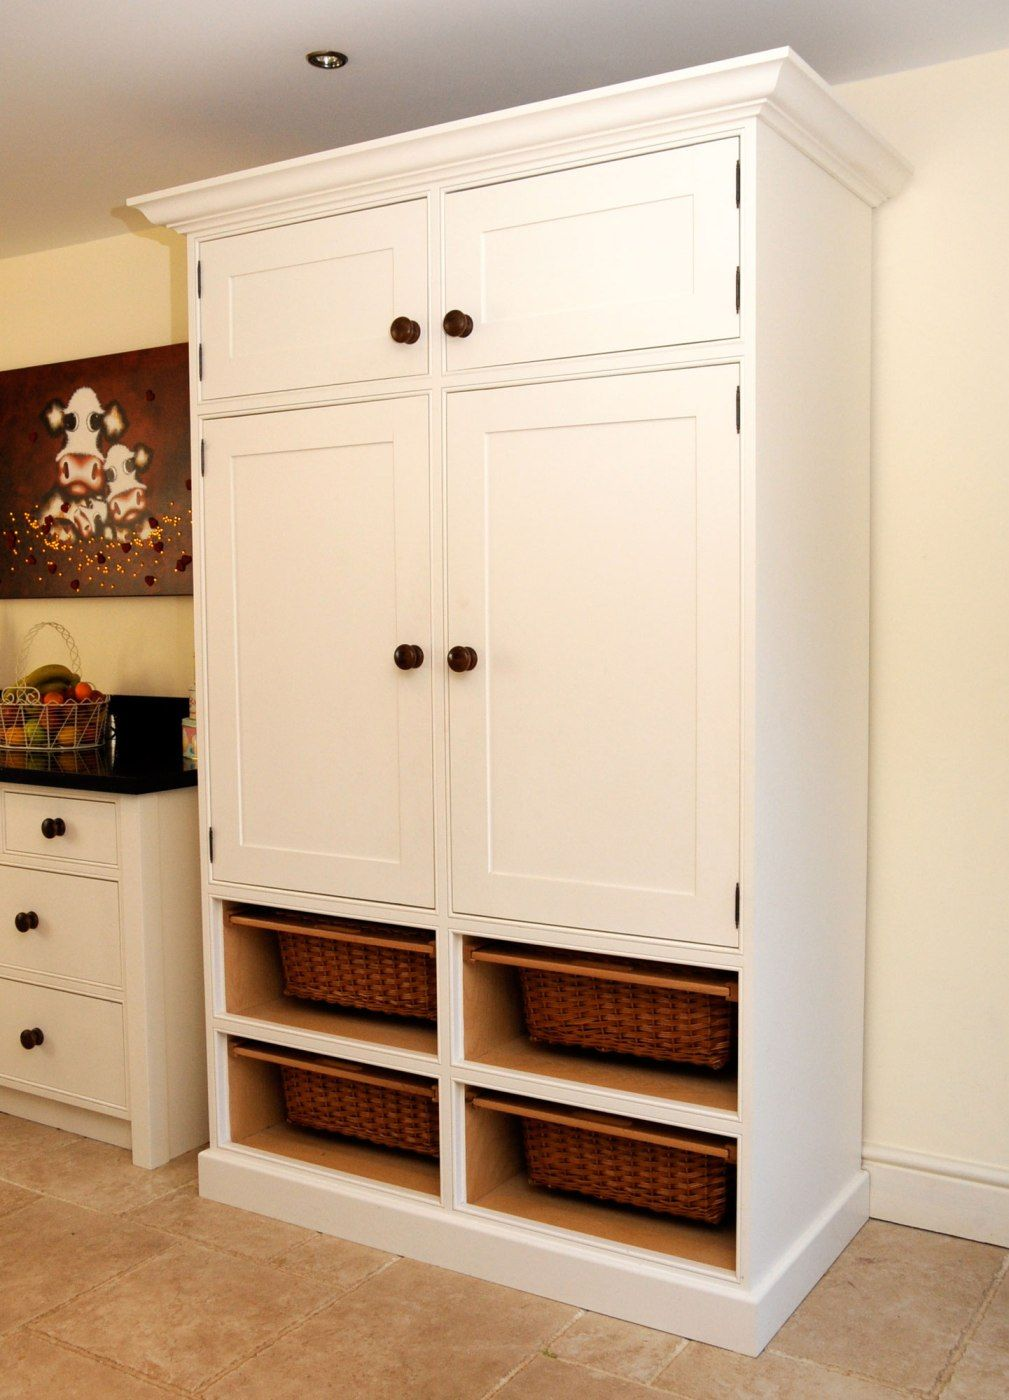 lowes free standing kitchen cabinets | kitchens | pinterest